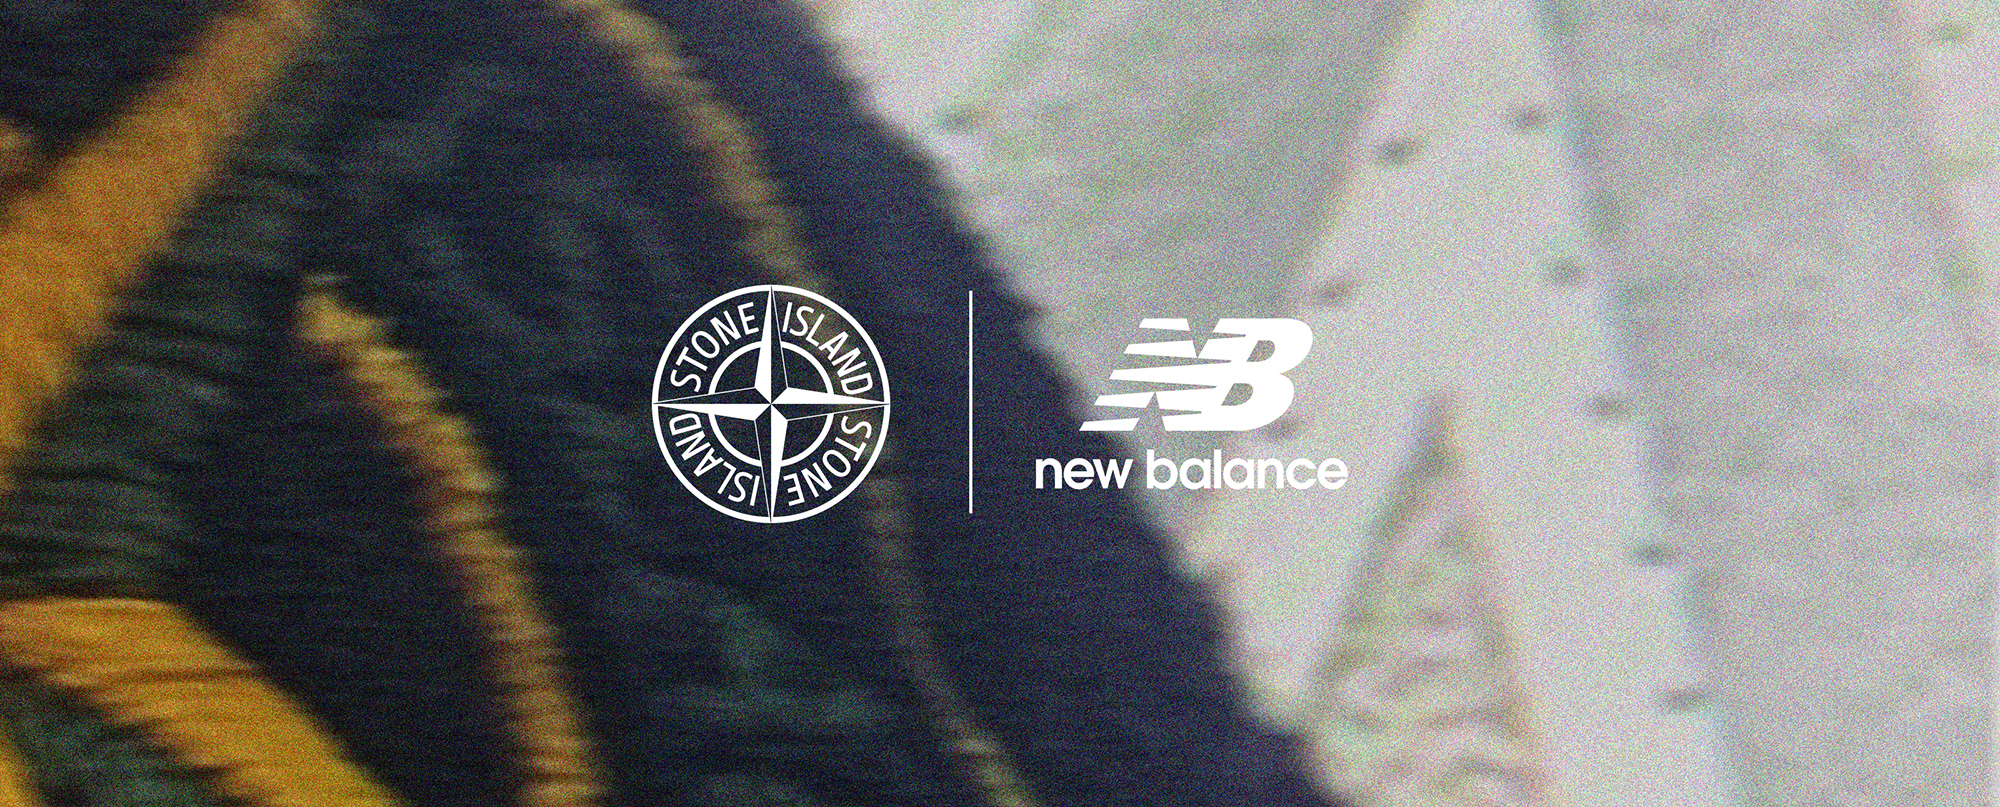 Stone Island and New Balance are working on a footwear collaboration